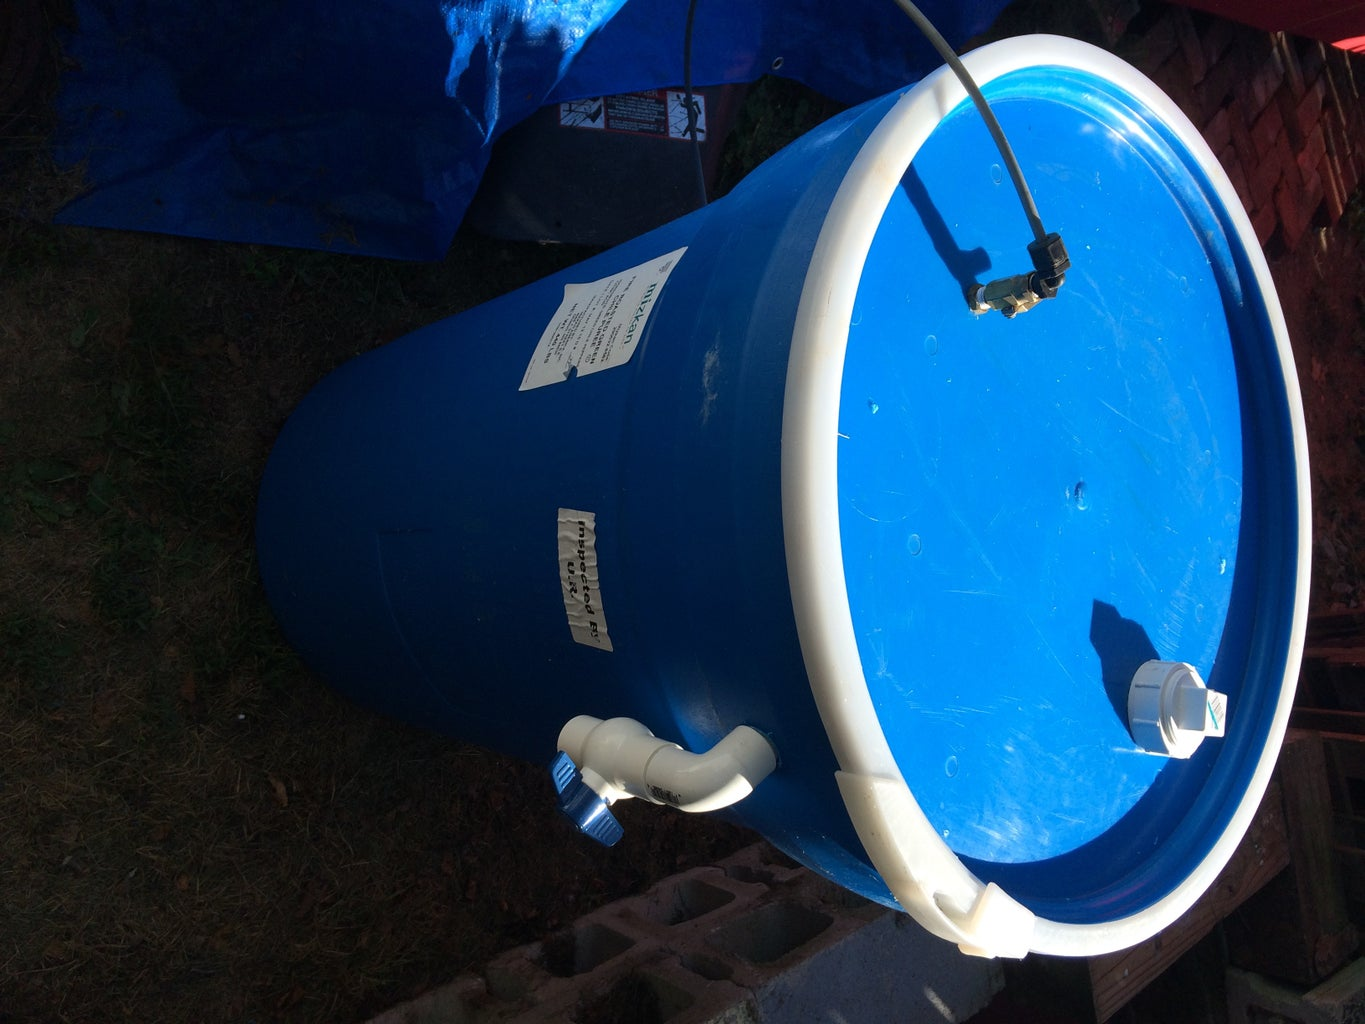 Add the Biogas Outlet